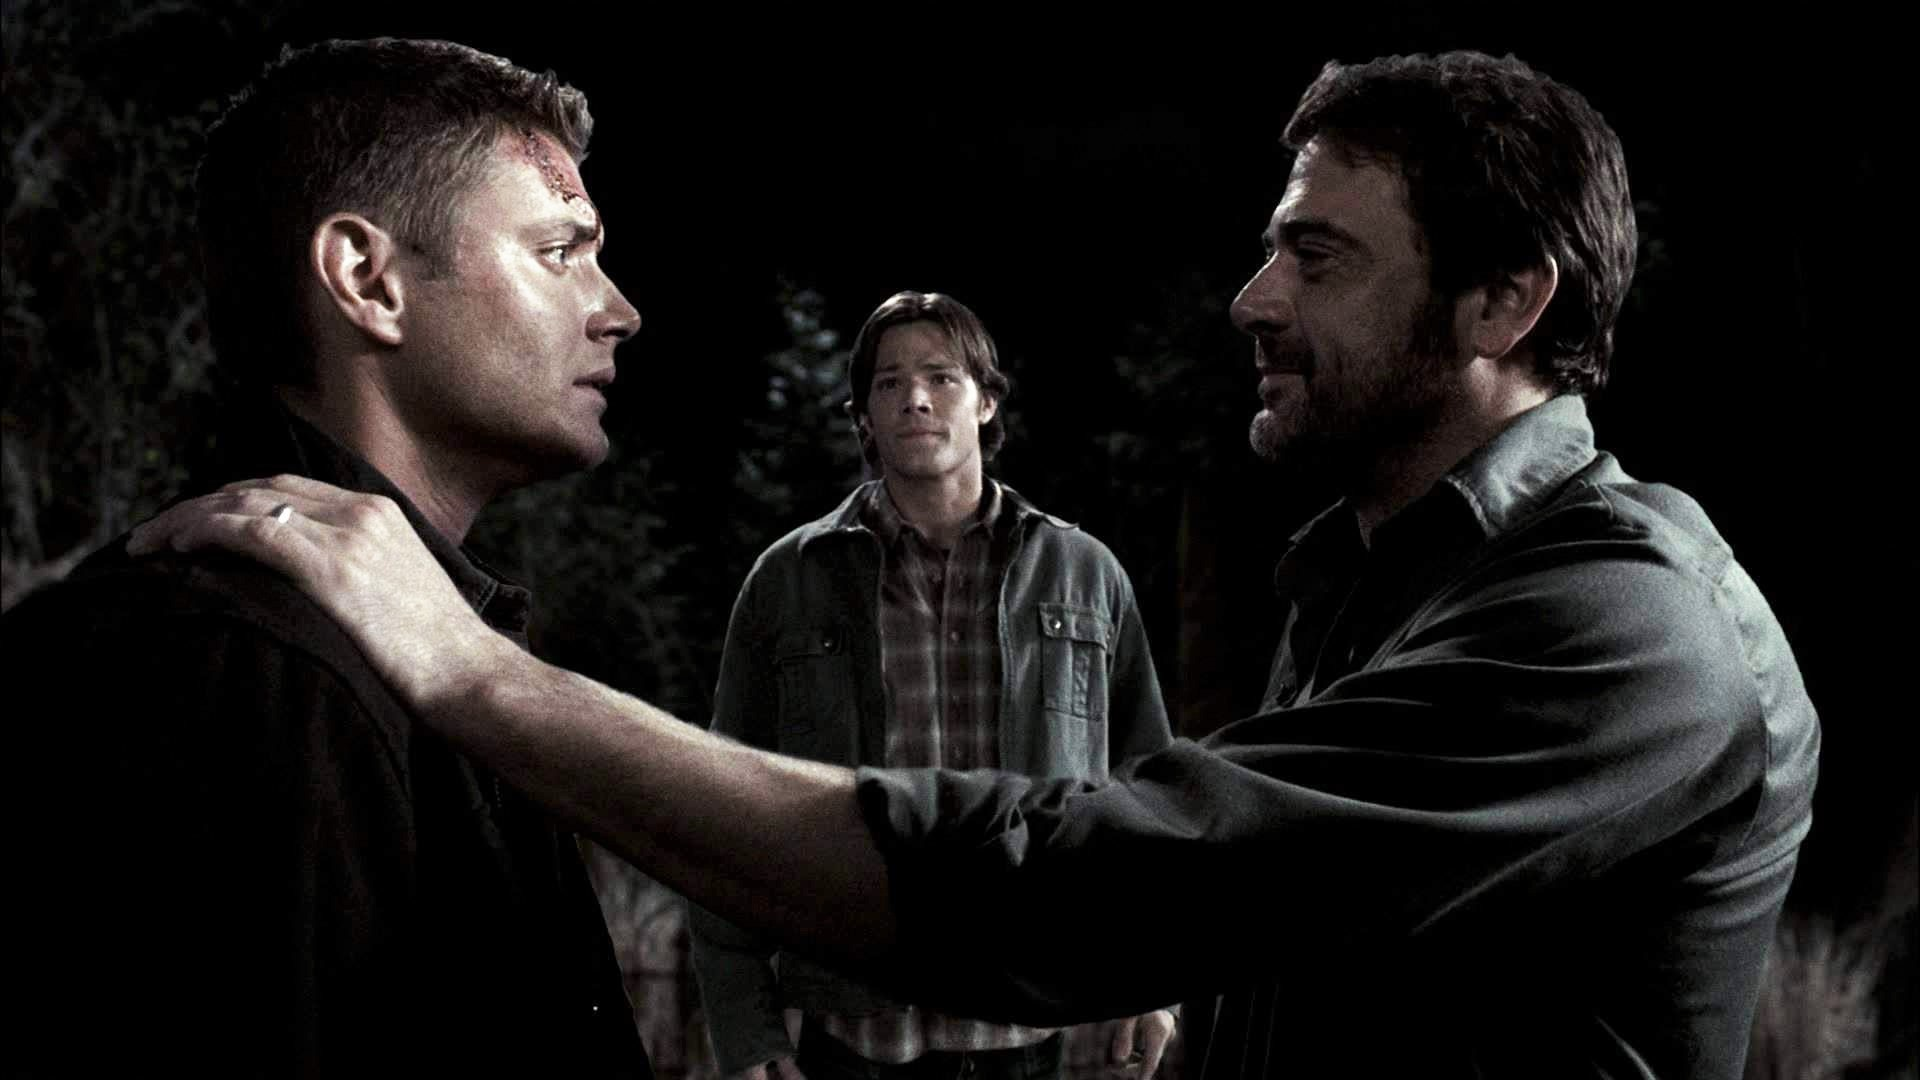 https://www.thewinchesterfamilybusiness.com/images/CaptionThis/supernatural0222-1682-2.jpg